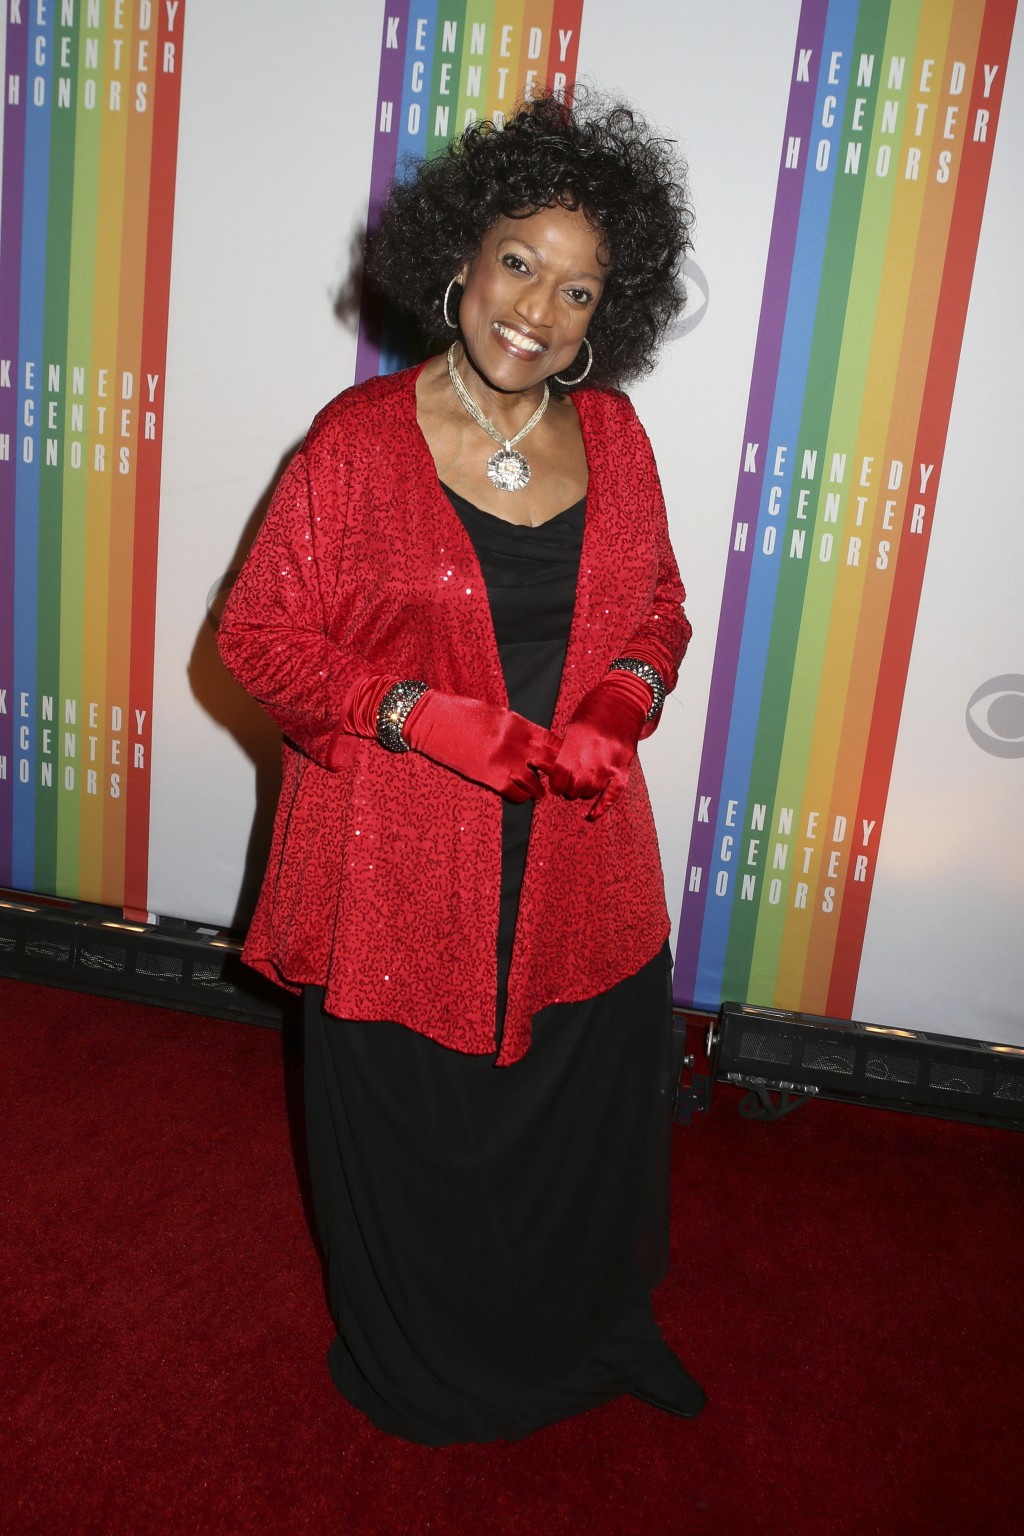 FILE - This Dec. 8, 2013 file photo shows Jessye Norman at the 2013 Kennedy Center Honors at the Kennedy Center for the Performing Arts in Washington.